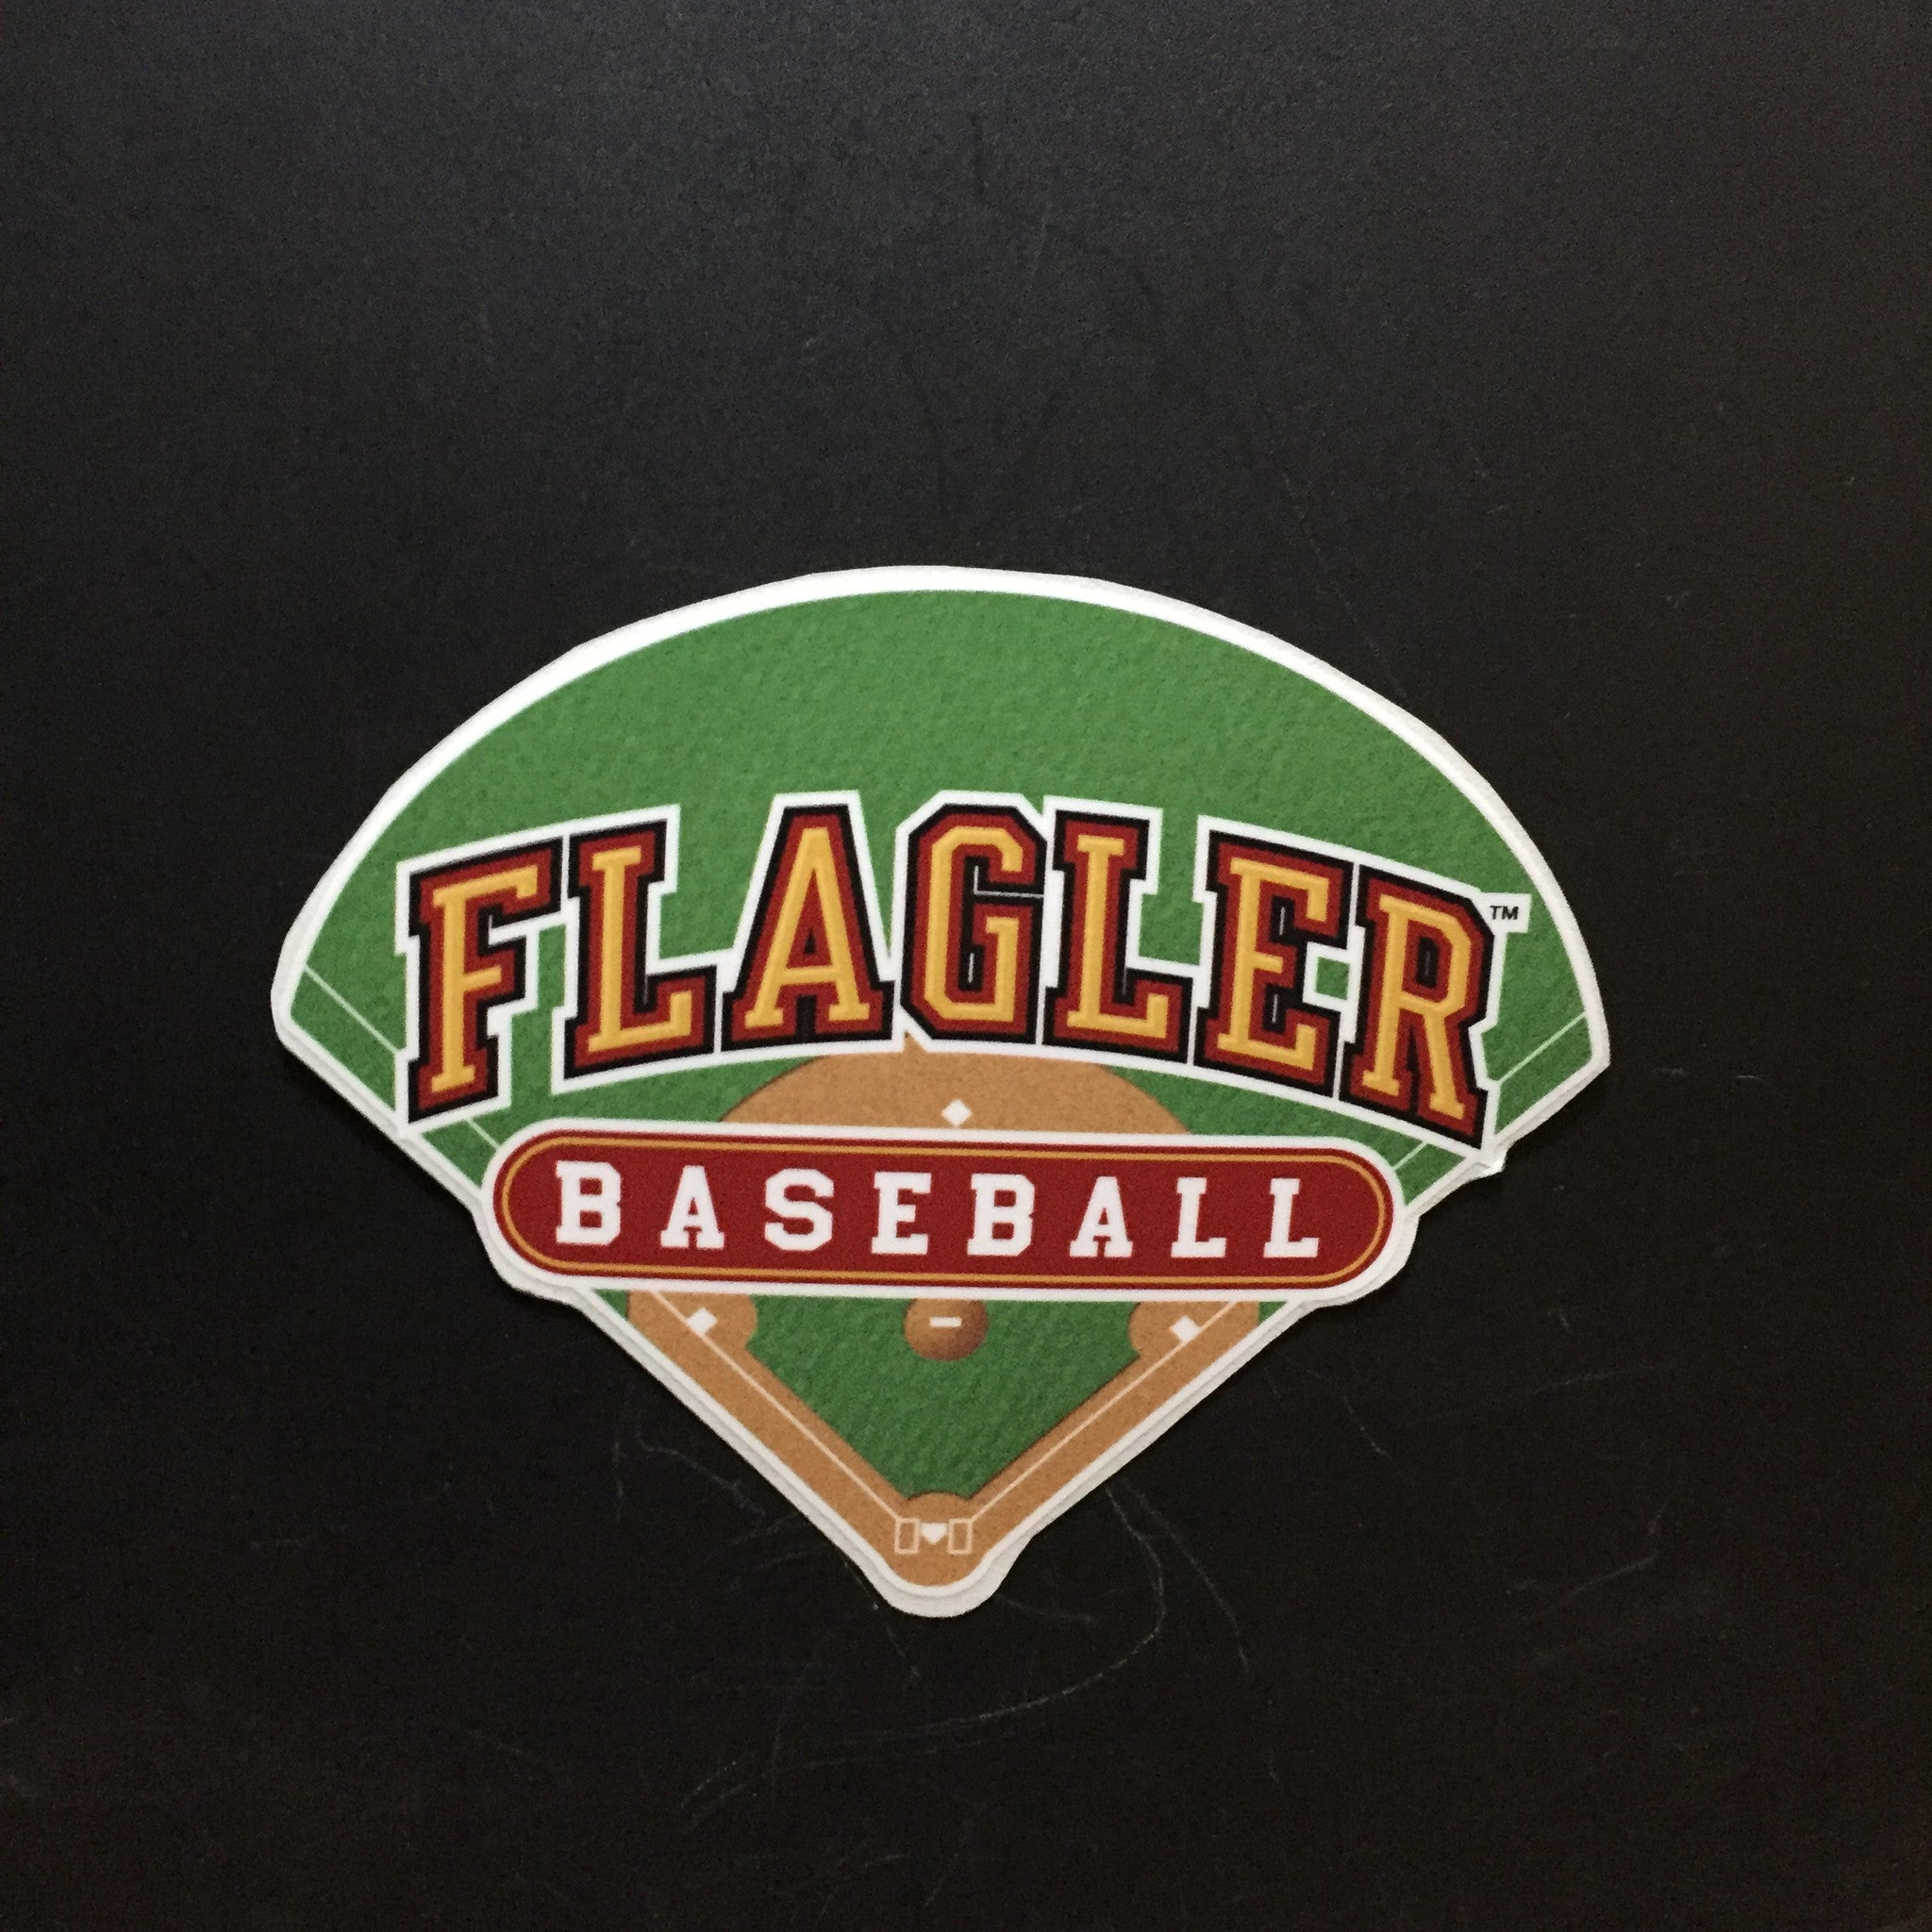 baseball field decal with Flagler written in gold and baseball written in white in red oval